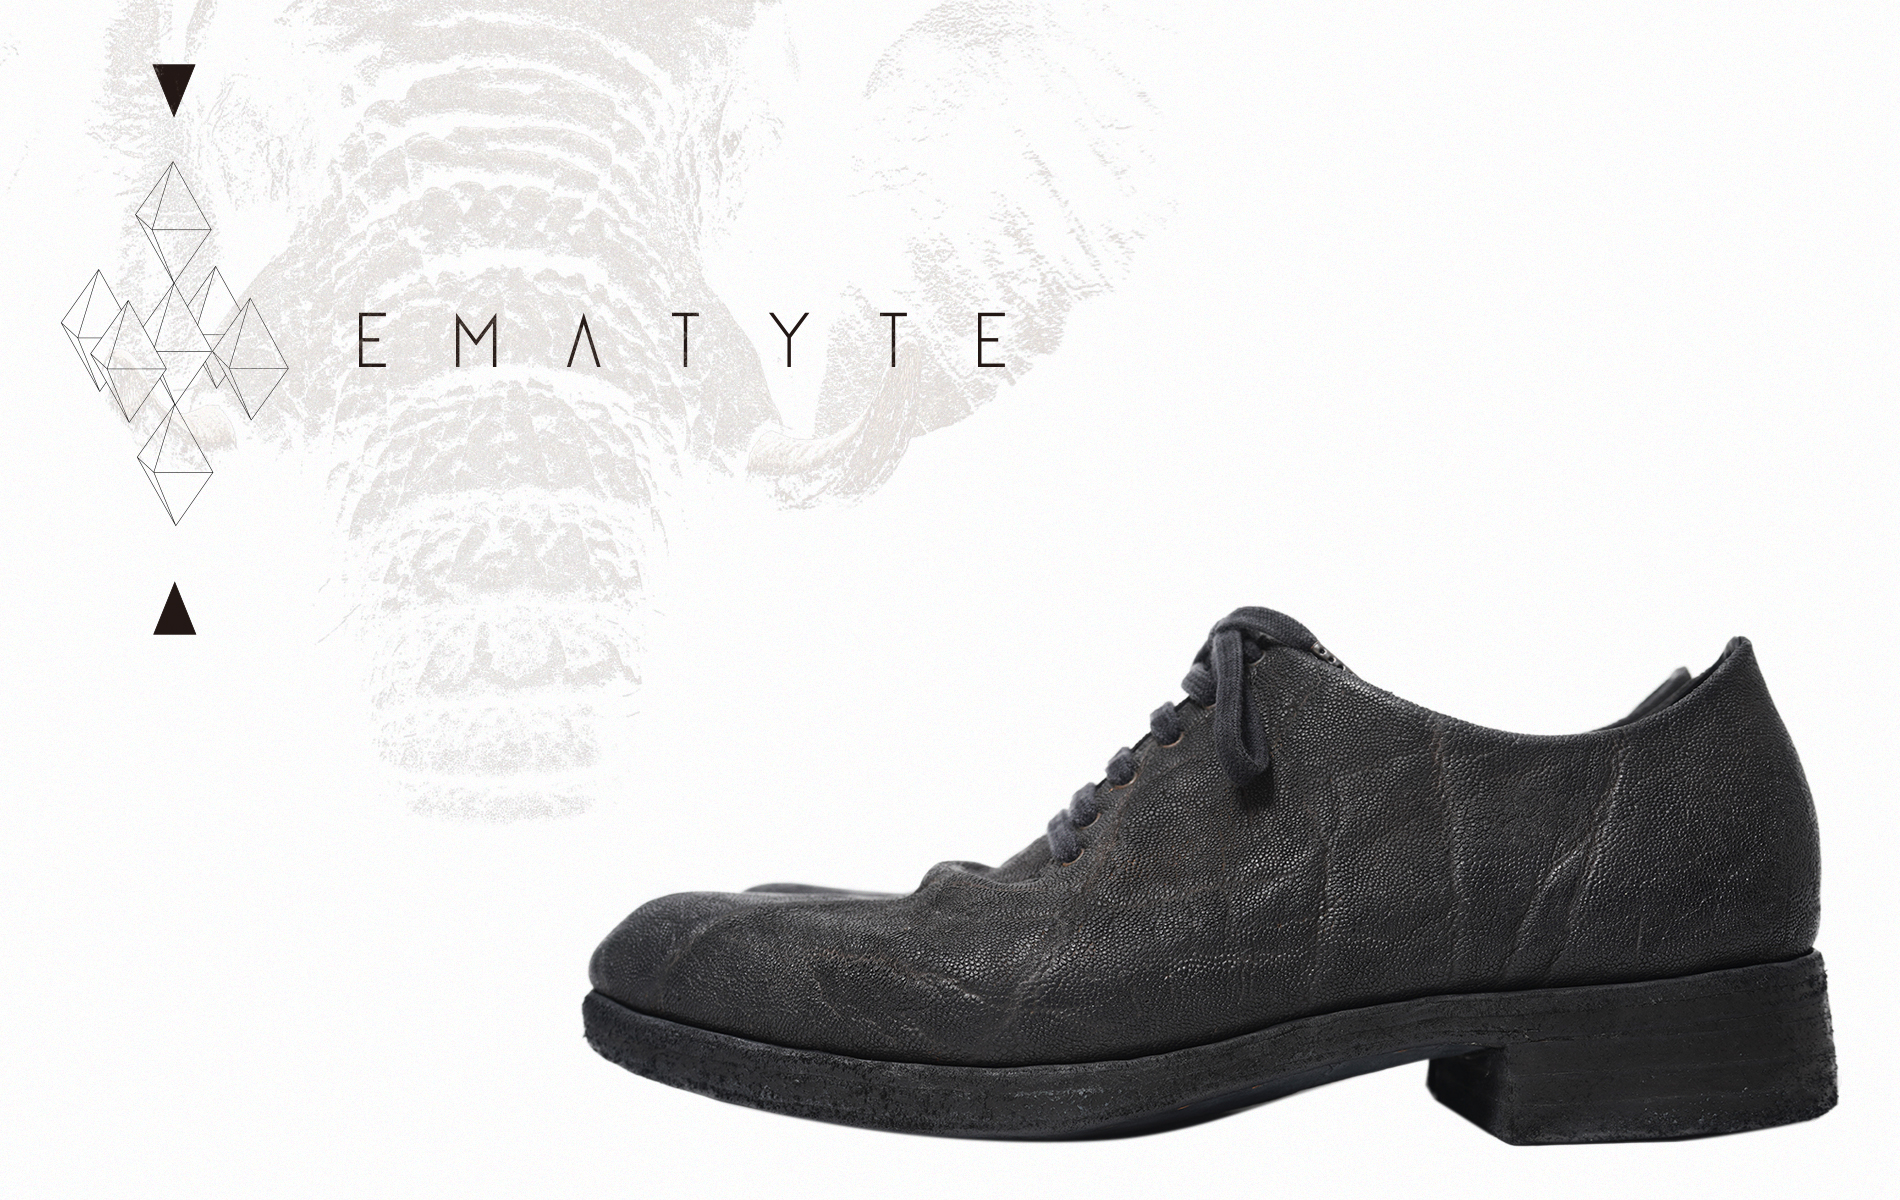 EMATYTE  ELEPHANT LEATHER SHOES